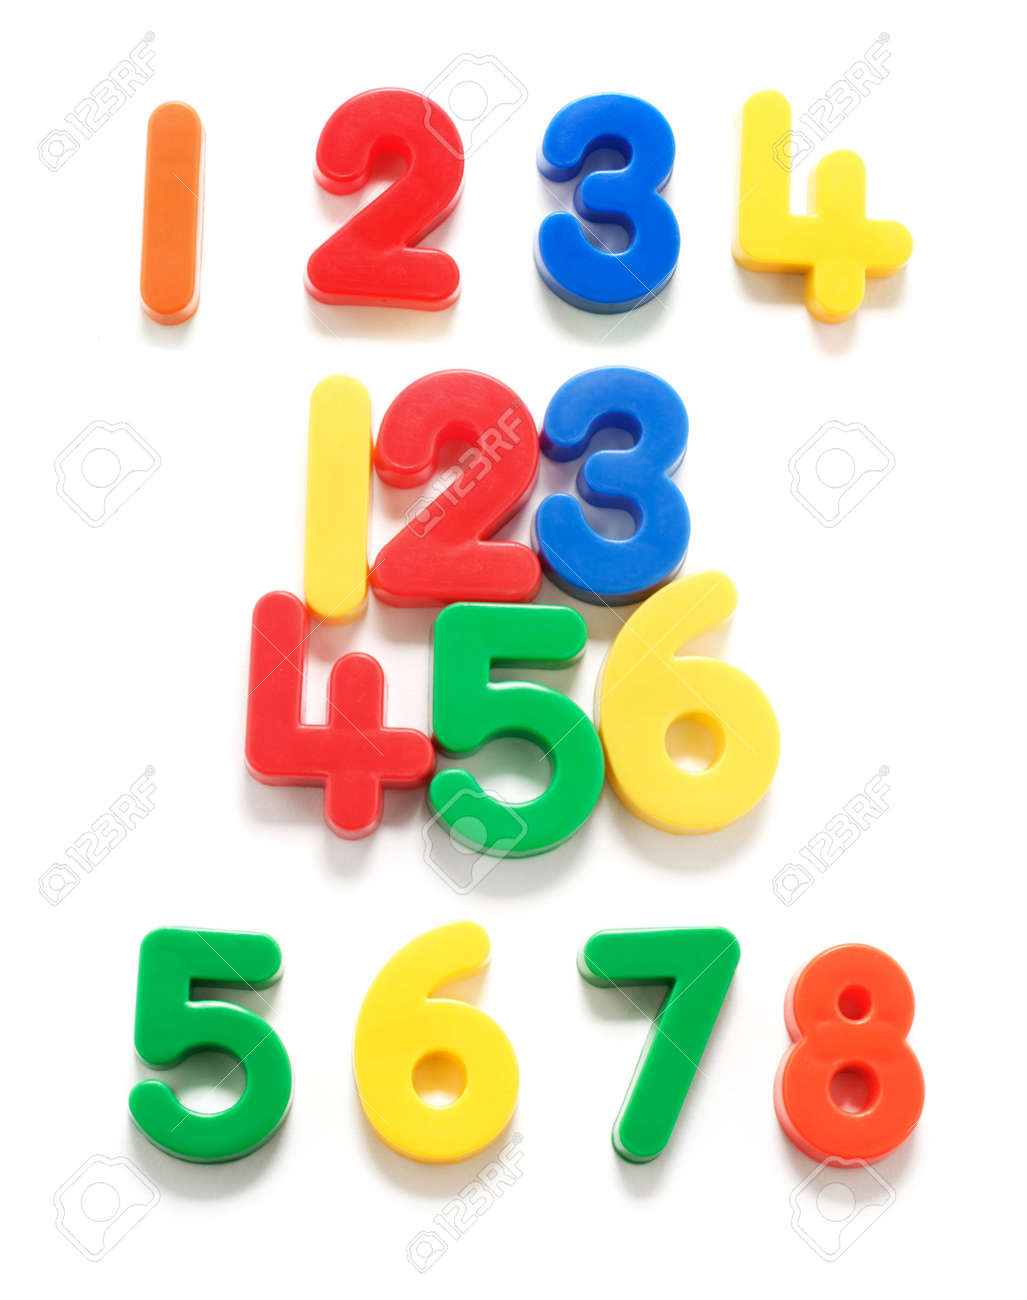 Plastic Numbers on White Background Stock Photo - 5051488